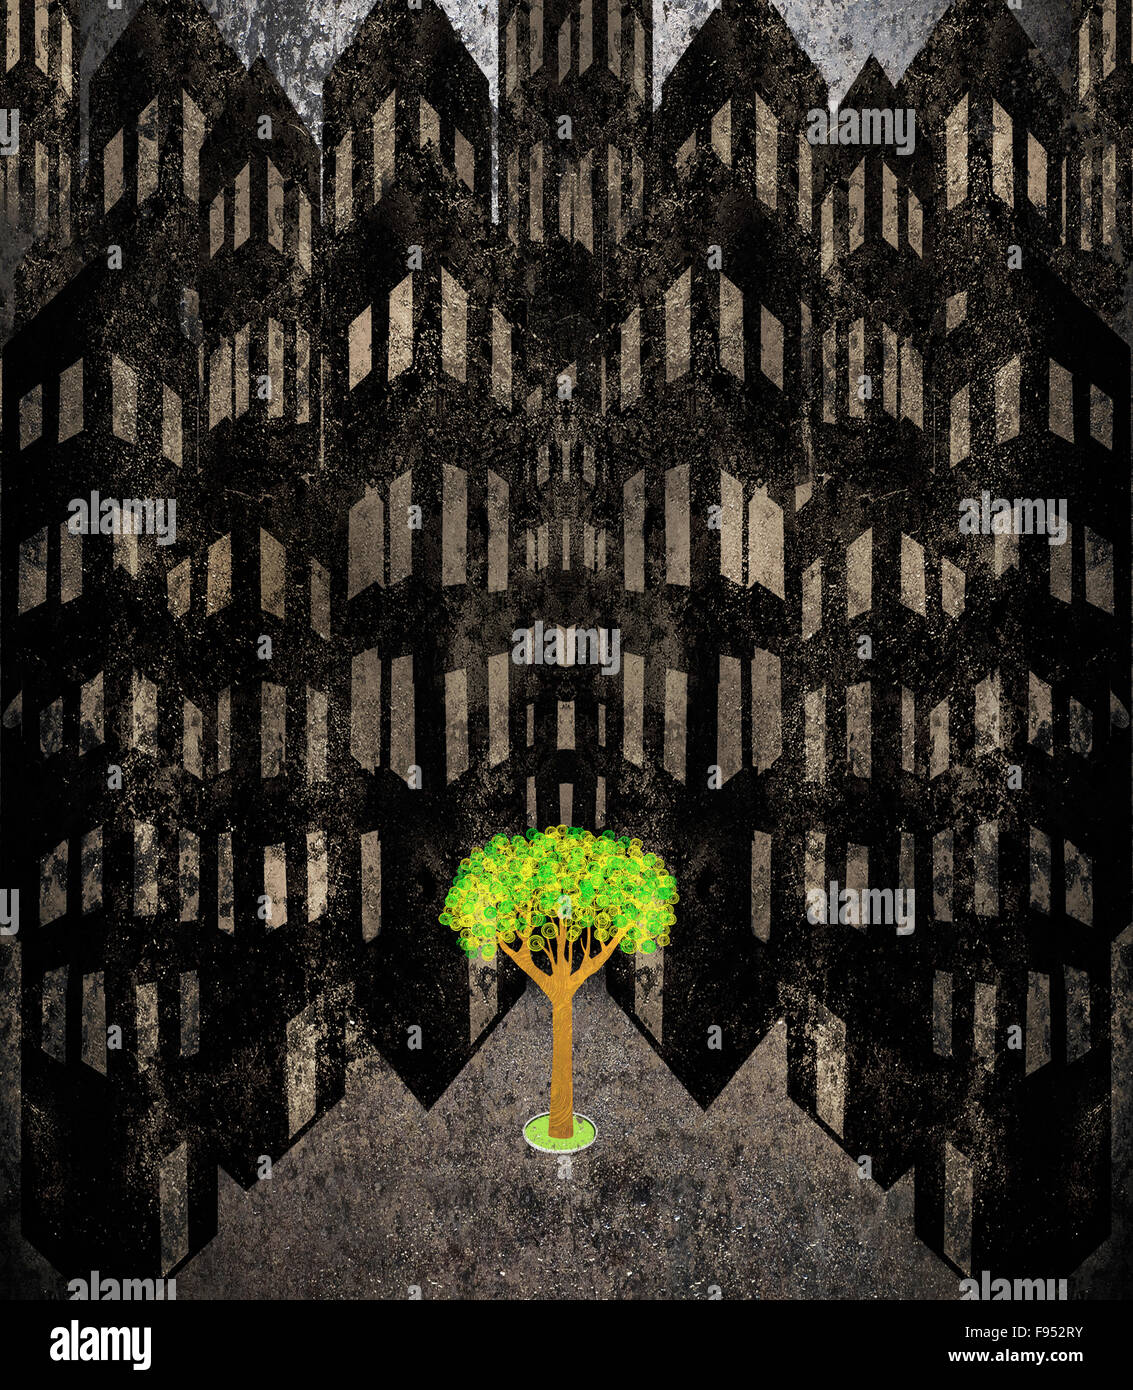 lonely tree in a cityscape digital illustration - Stock Image